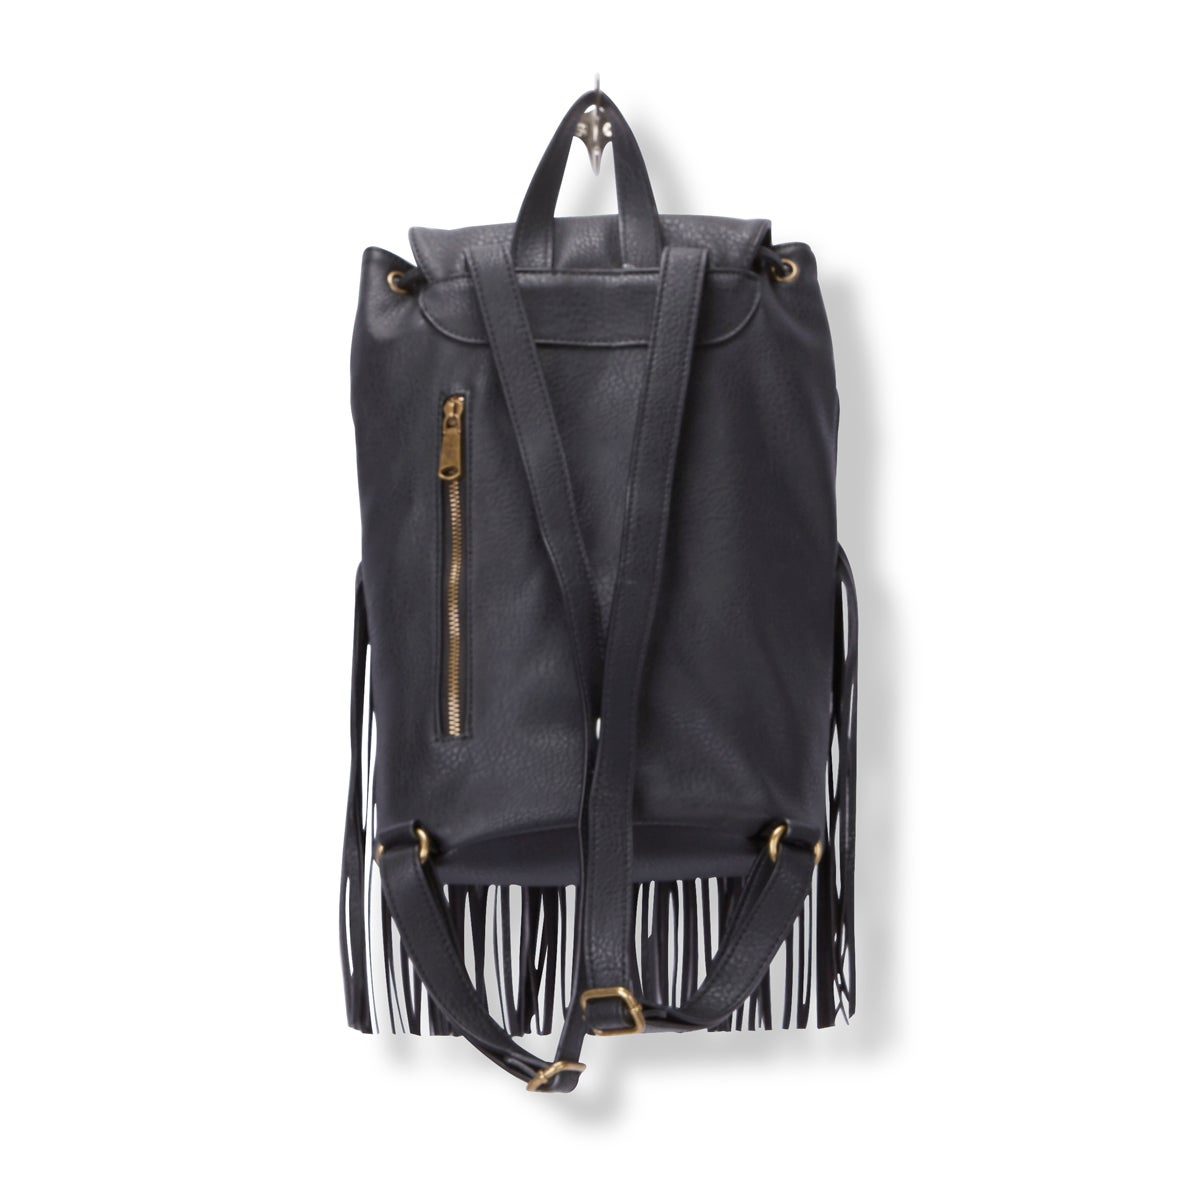 Lds Fringe Frenzy black backpack